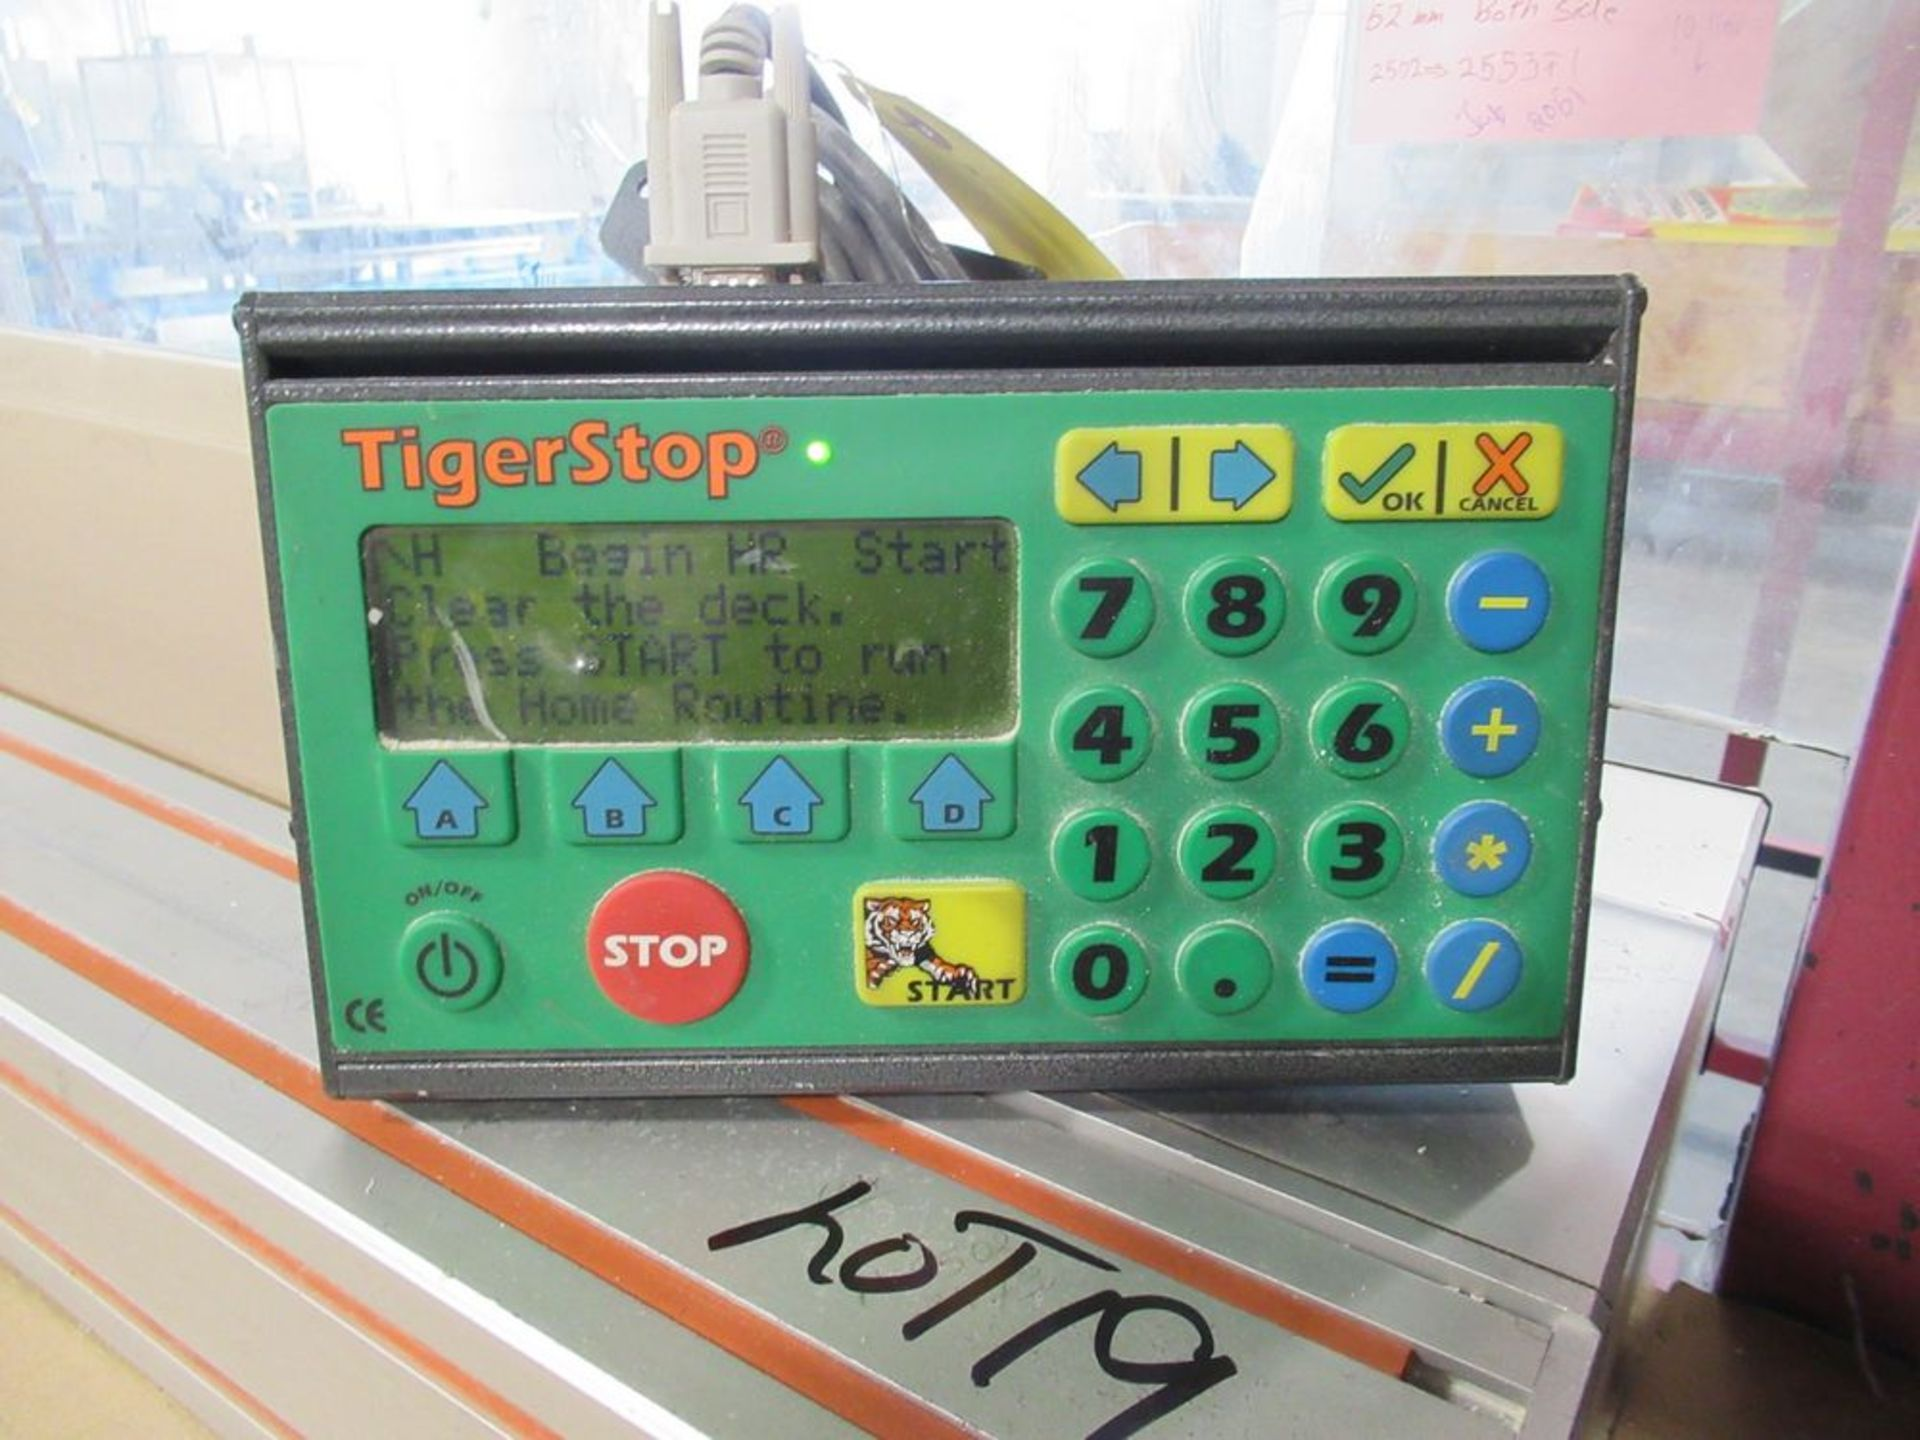 """TIGER STOP 12' MATERIAL MEASURING SYSTEM W/ 22"""" X 12' TABLE - Image 4 of 4"""